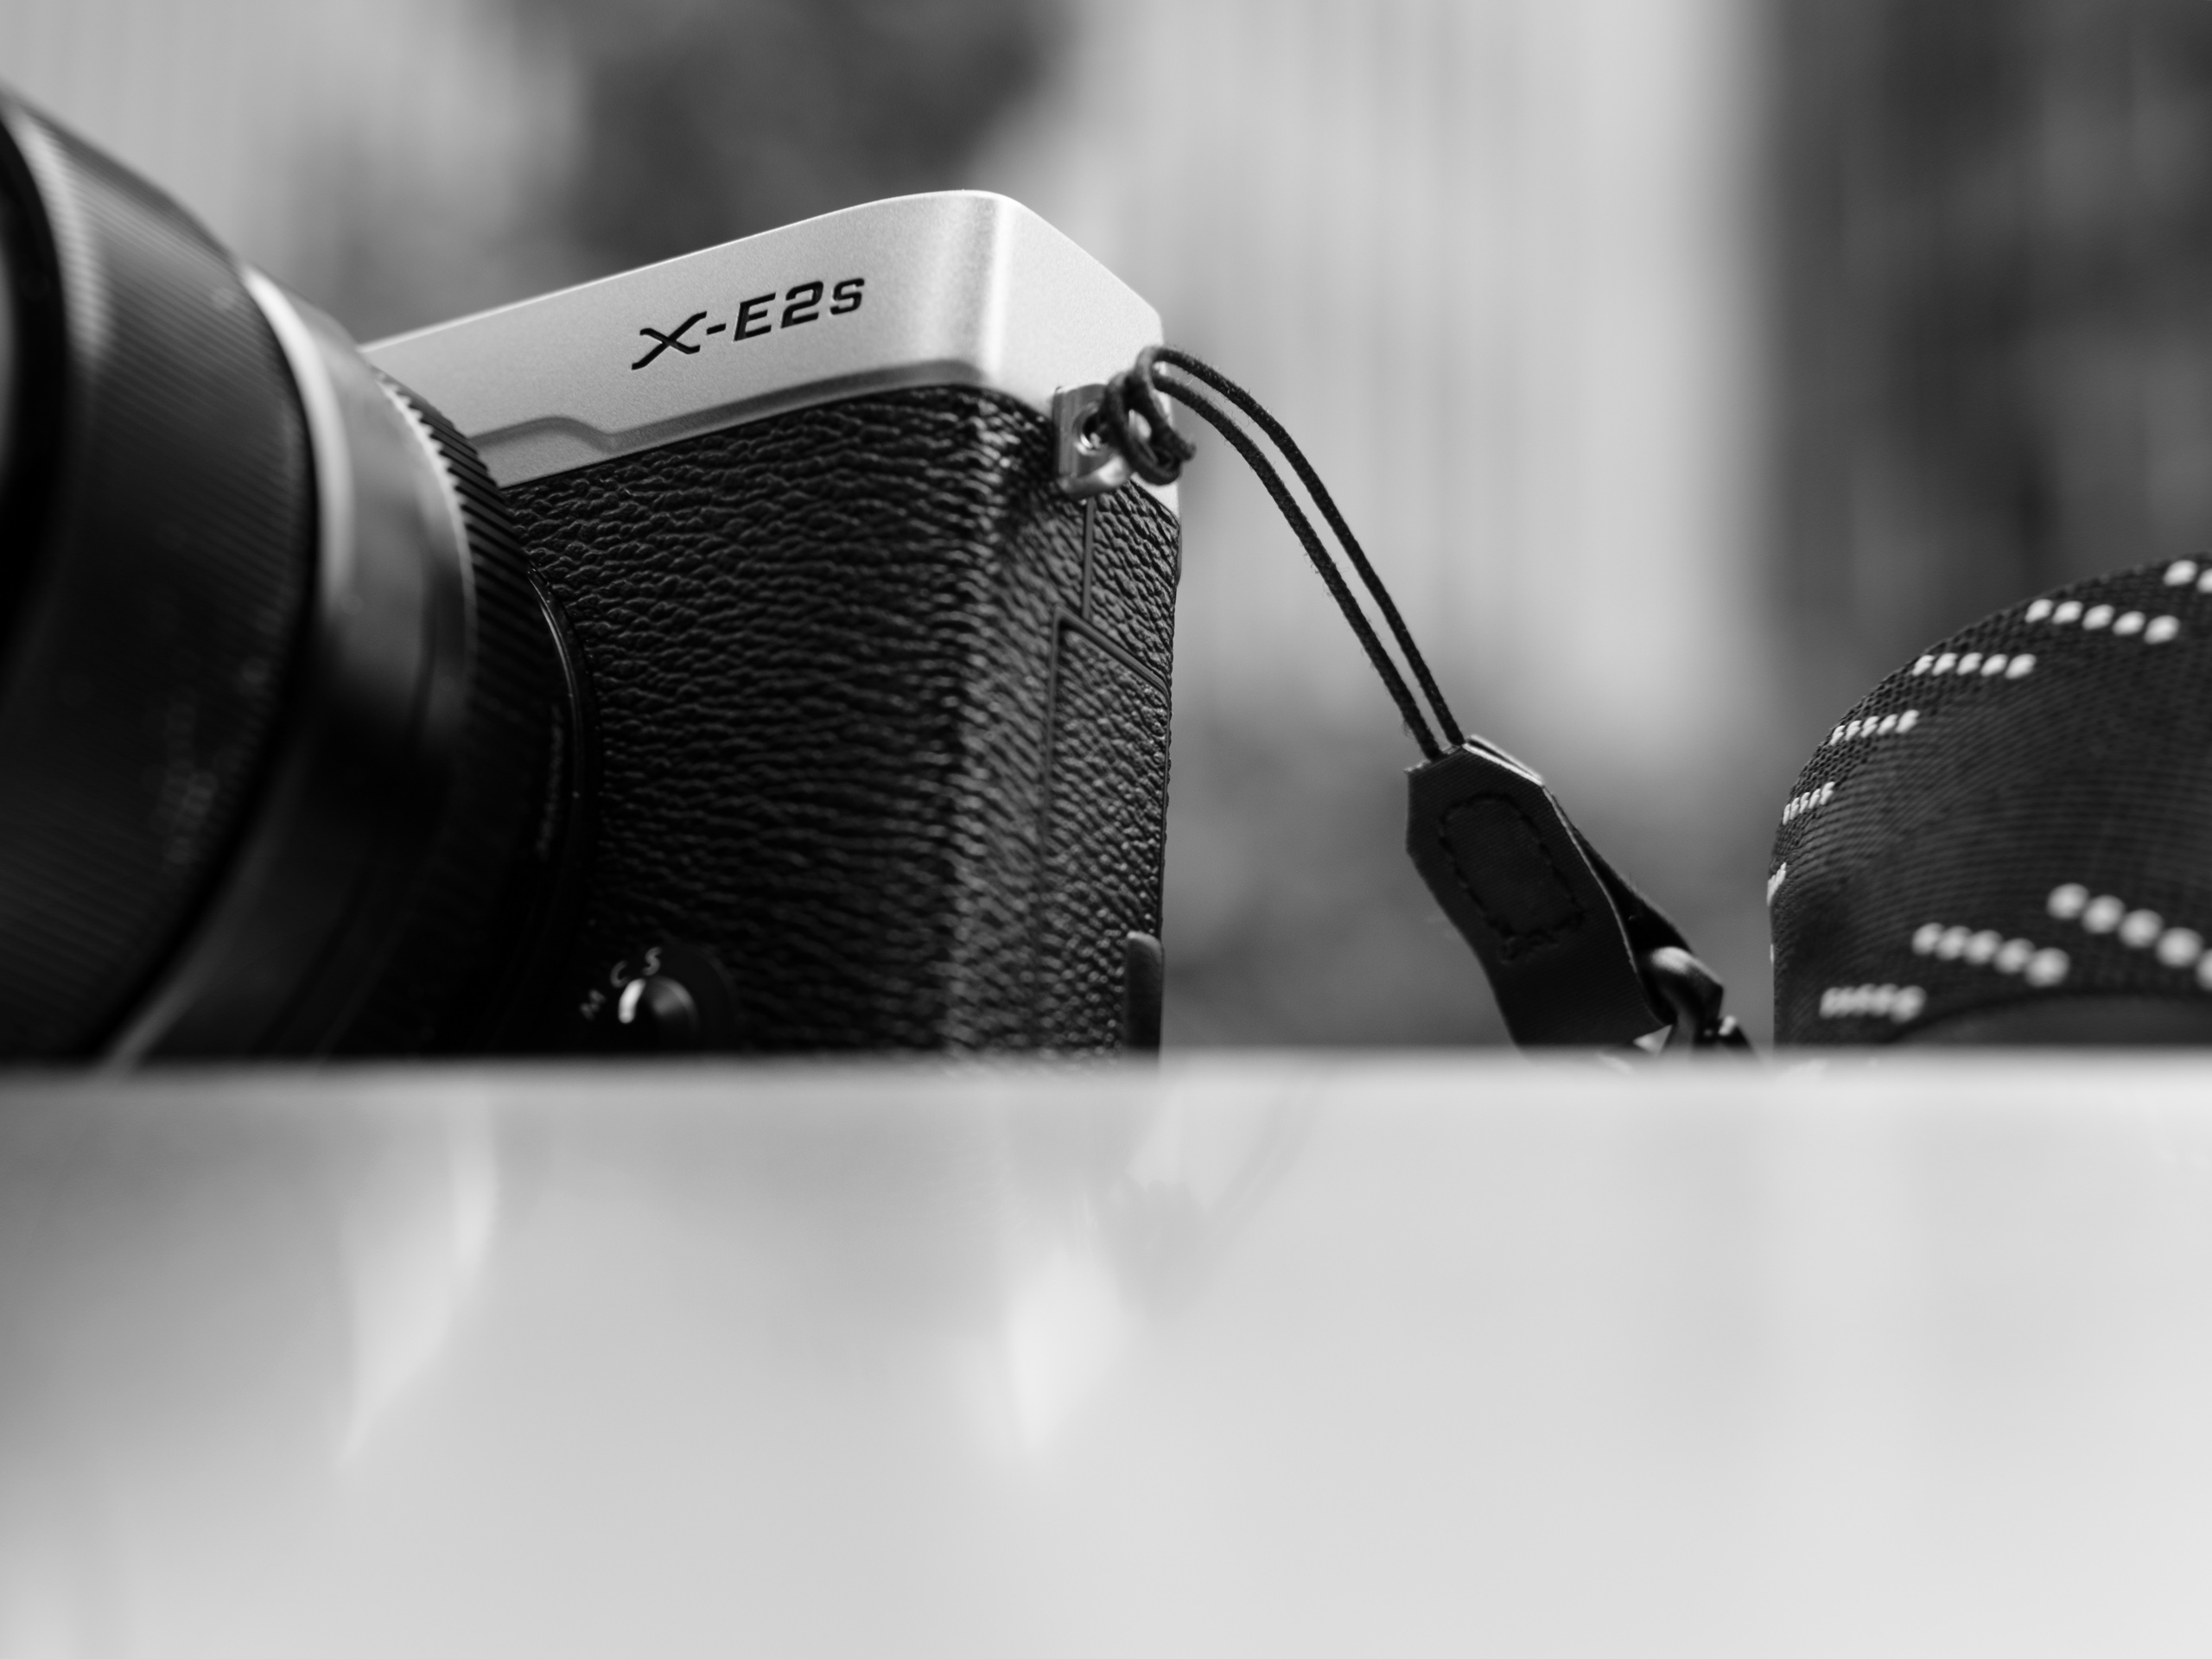 Still Solid Fujifilm X E2s Review Digital Photography 7artisans 12mm F 28 For Fuji Black Specifications